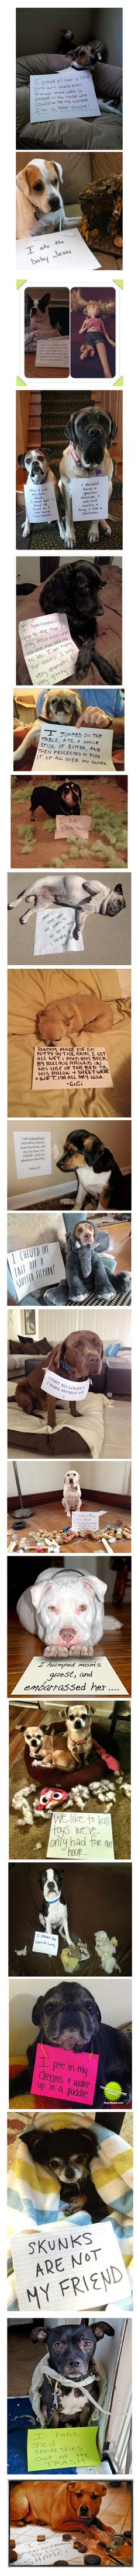 The best of dog shaming - The black dog playing dead has the perfect face expression LOL